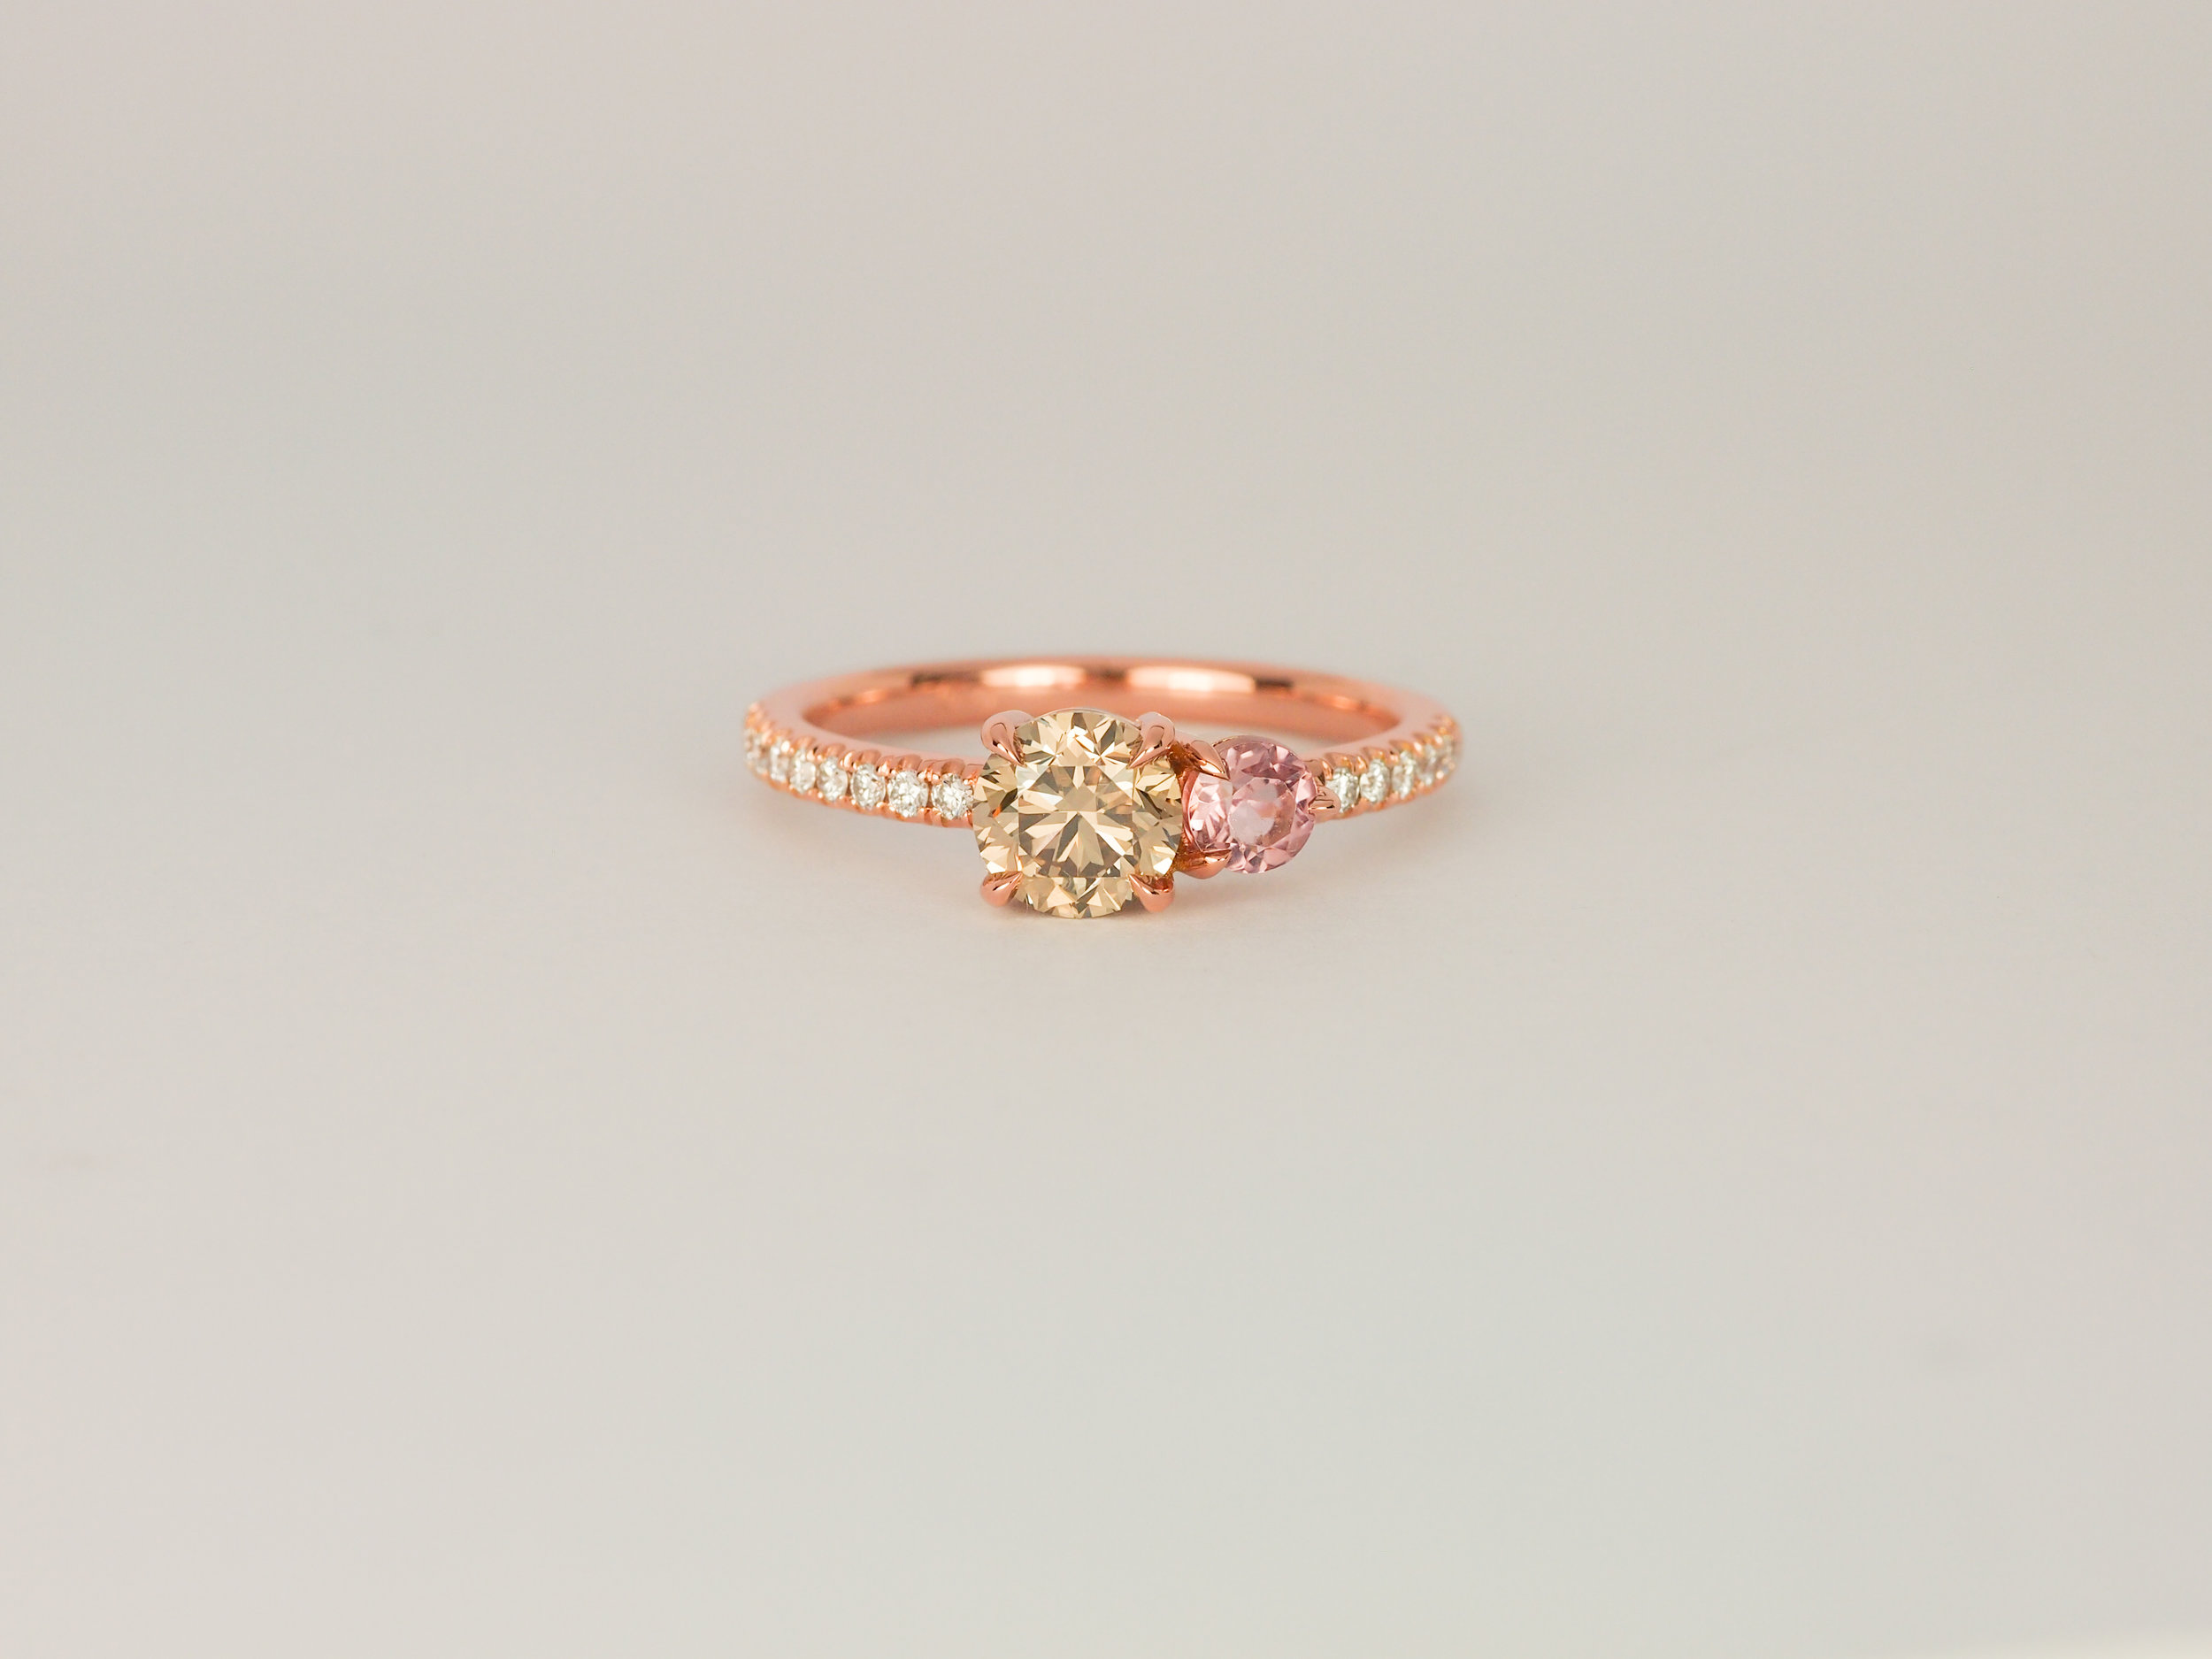 Champagne diamond and pink tourmaline rose gold engagement ring with a thin band of diamonds